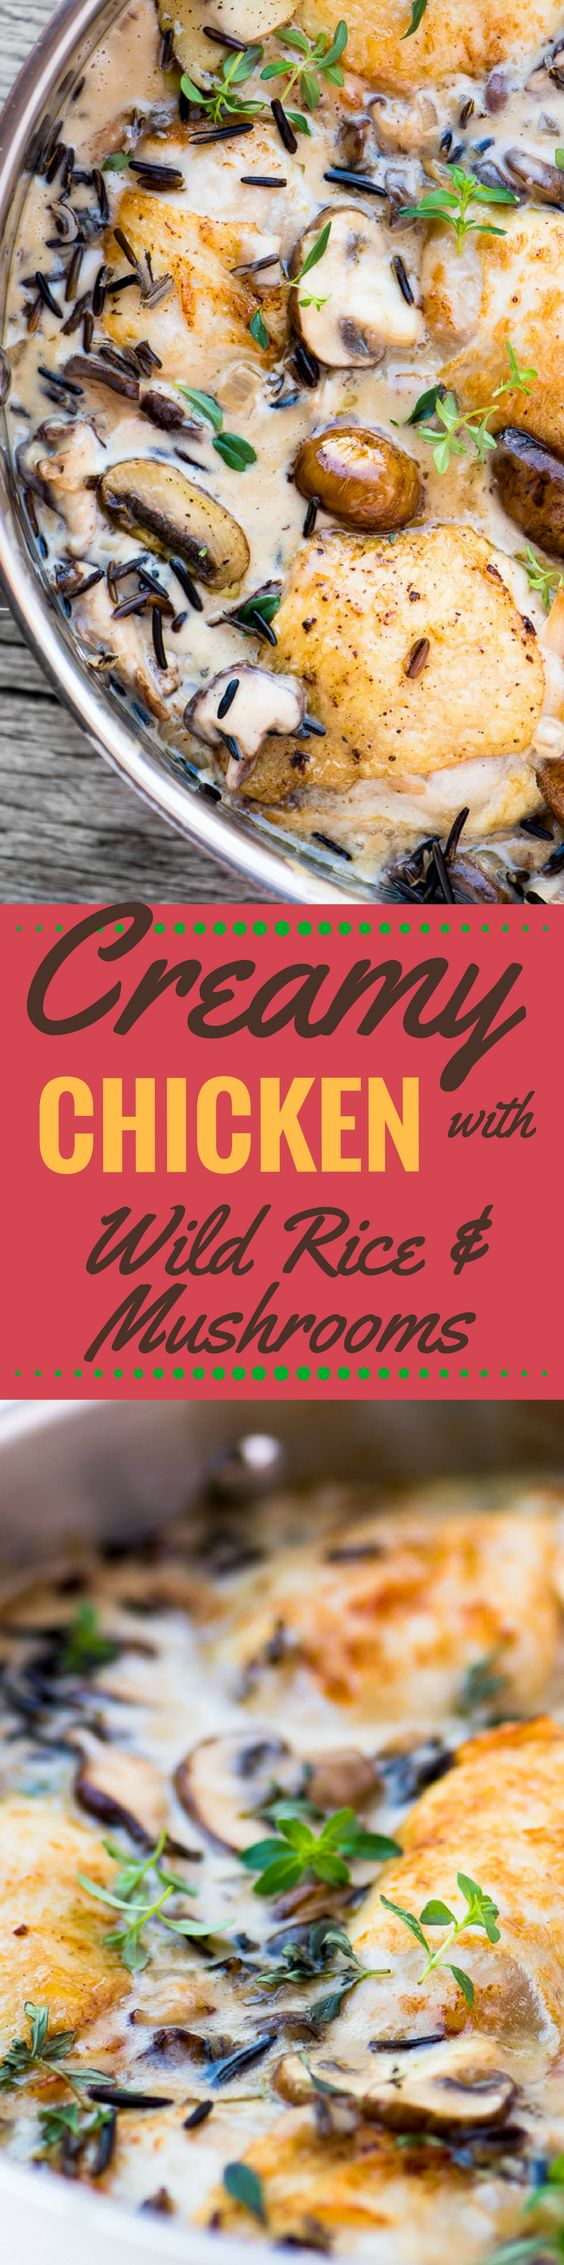 Creamy Chicken with Wild Rice and Mushrooms is the quintessential fall meal